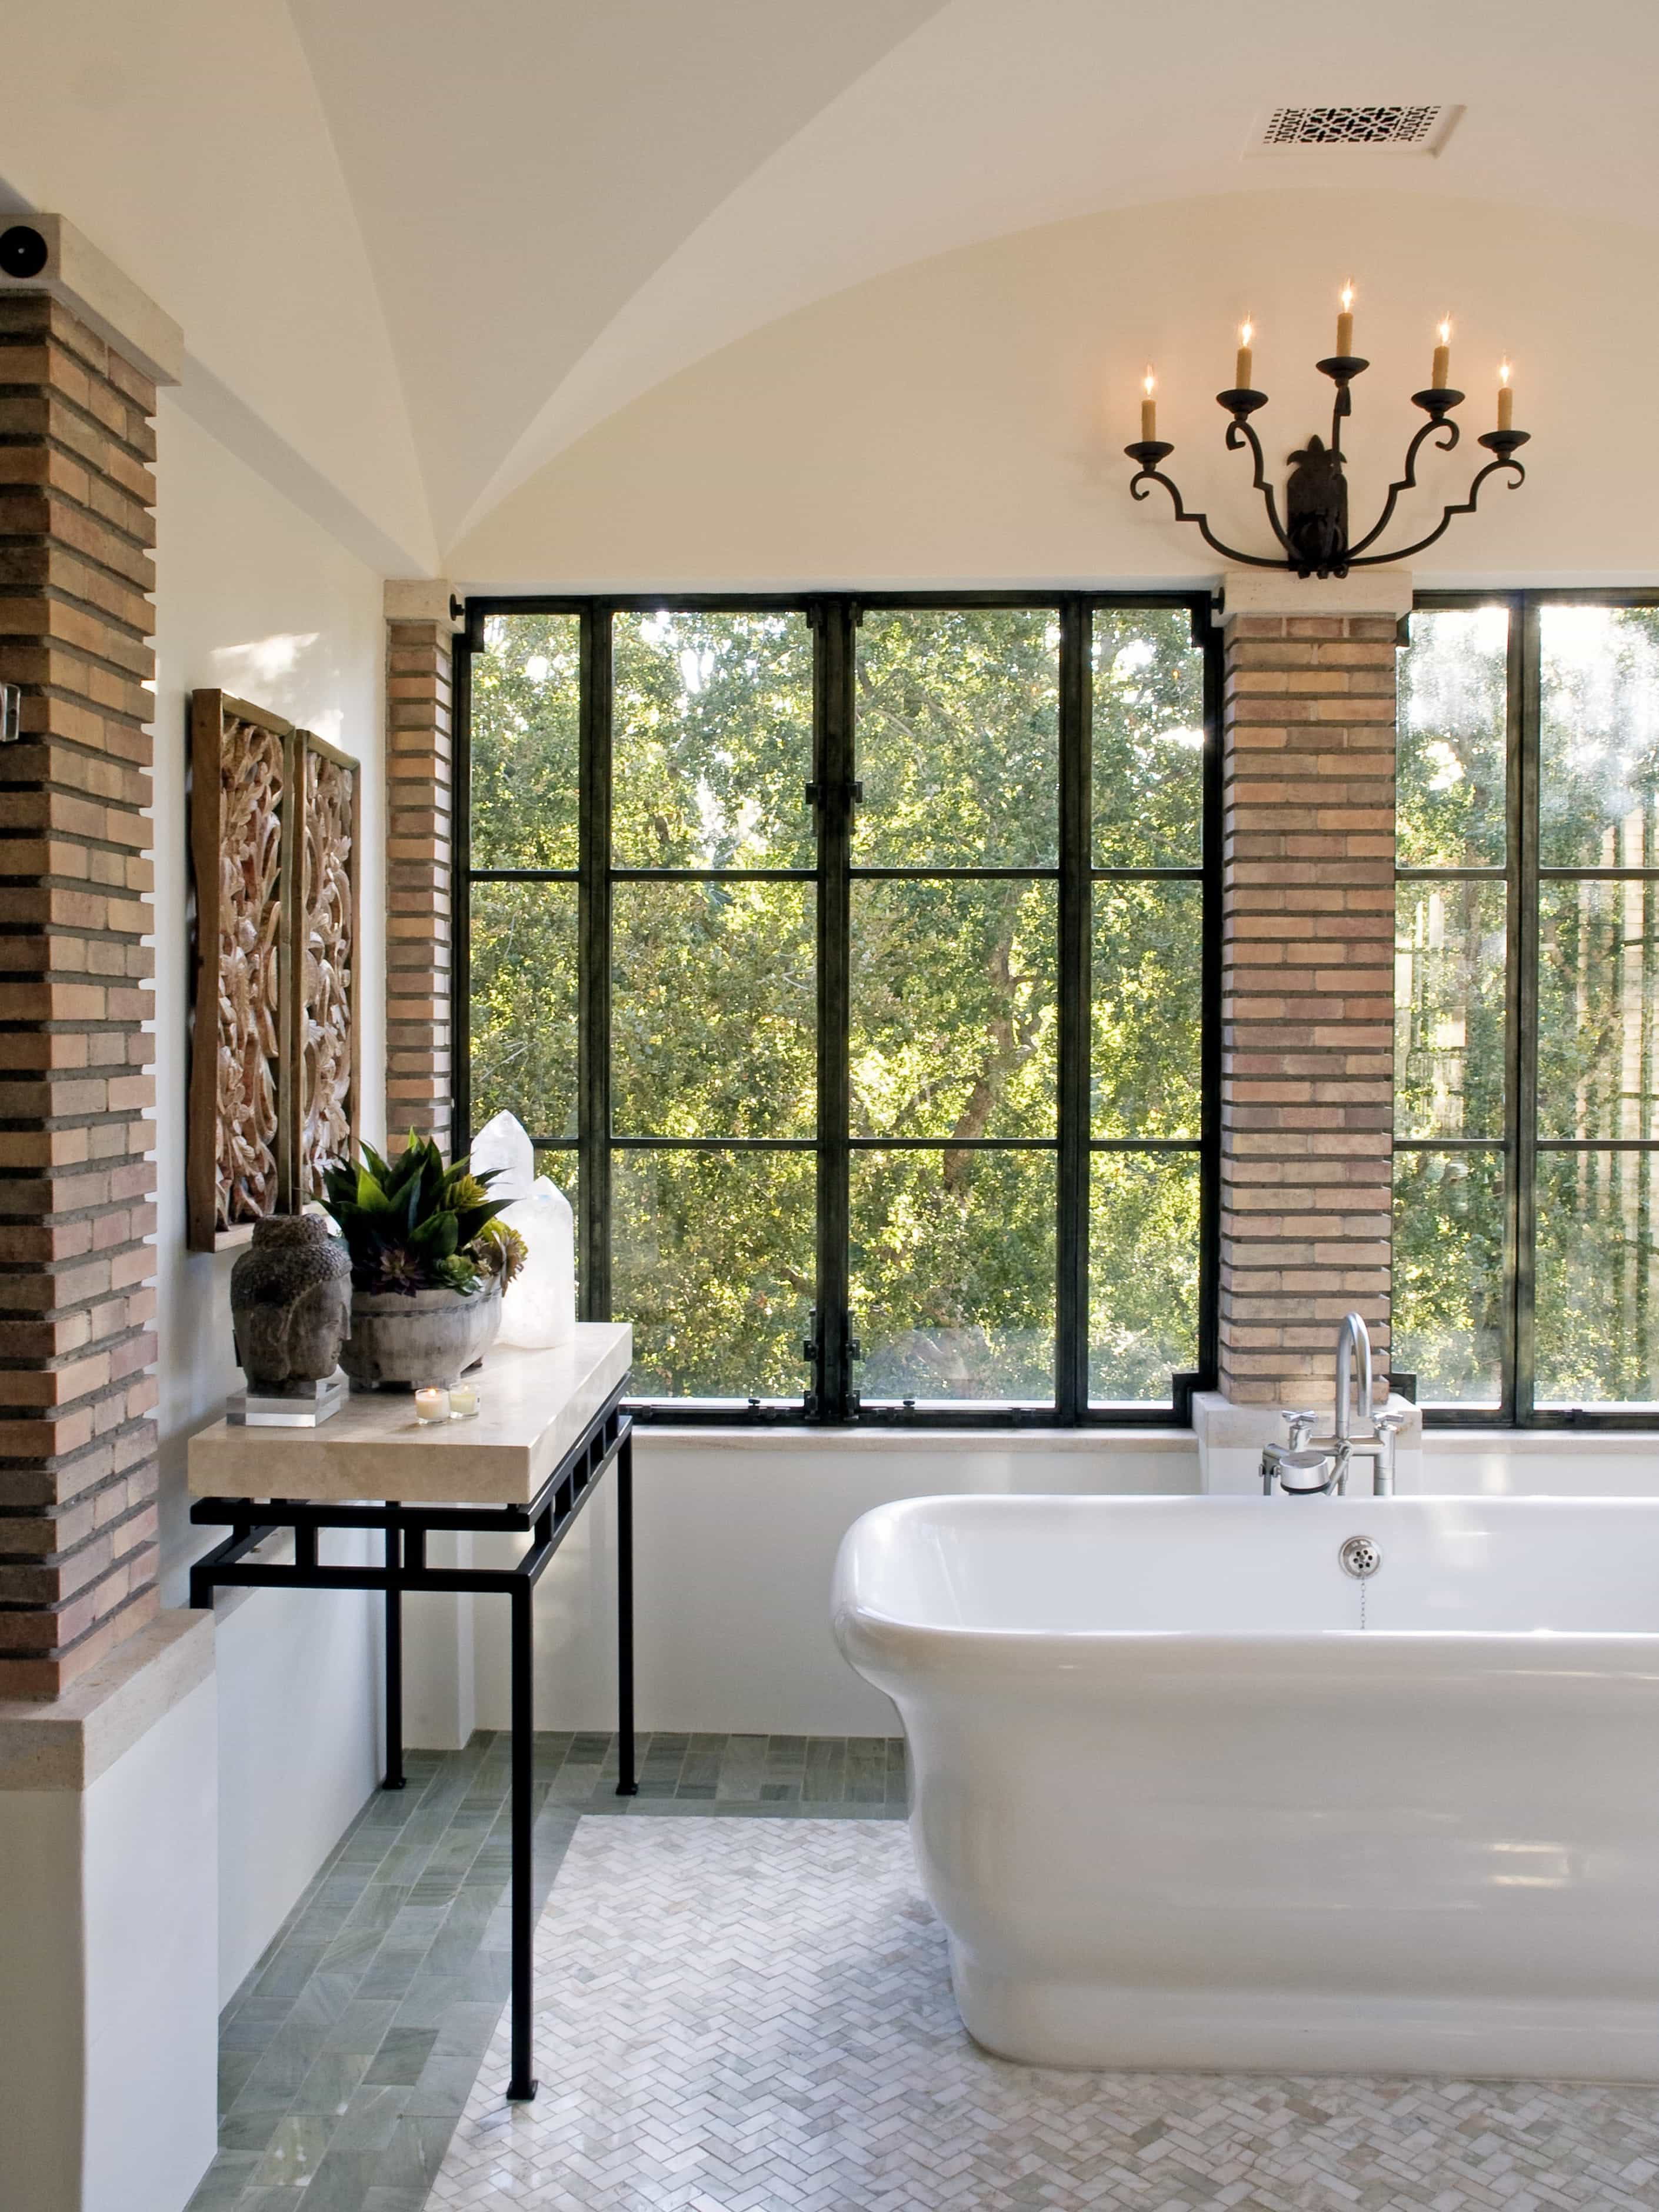 Neutral Bathroom With White Slipper Tub And Brick Wall Columns (Image 20 of 30)